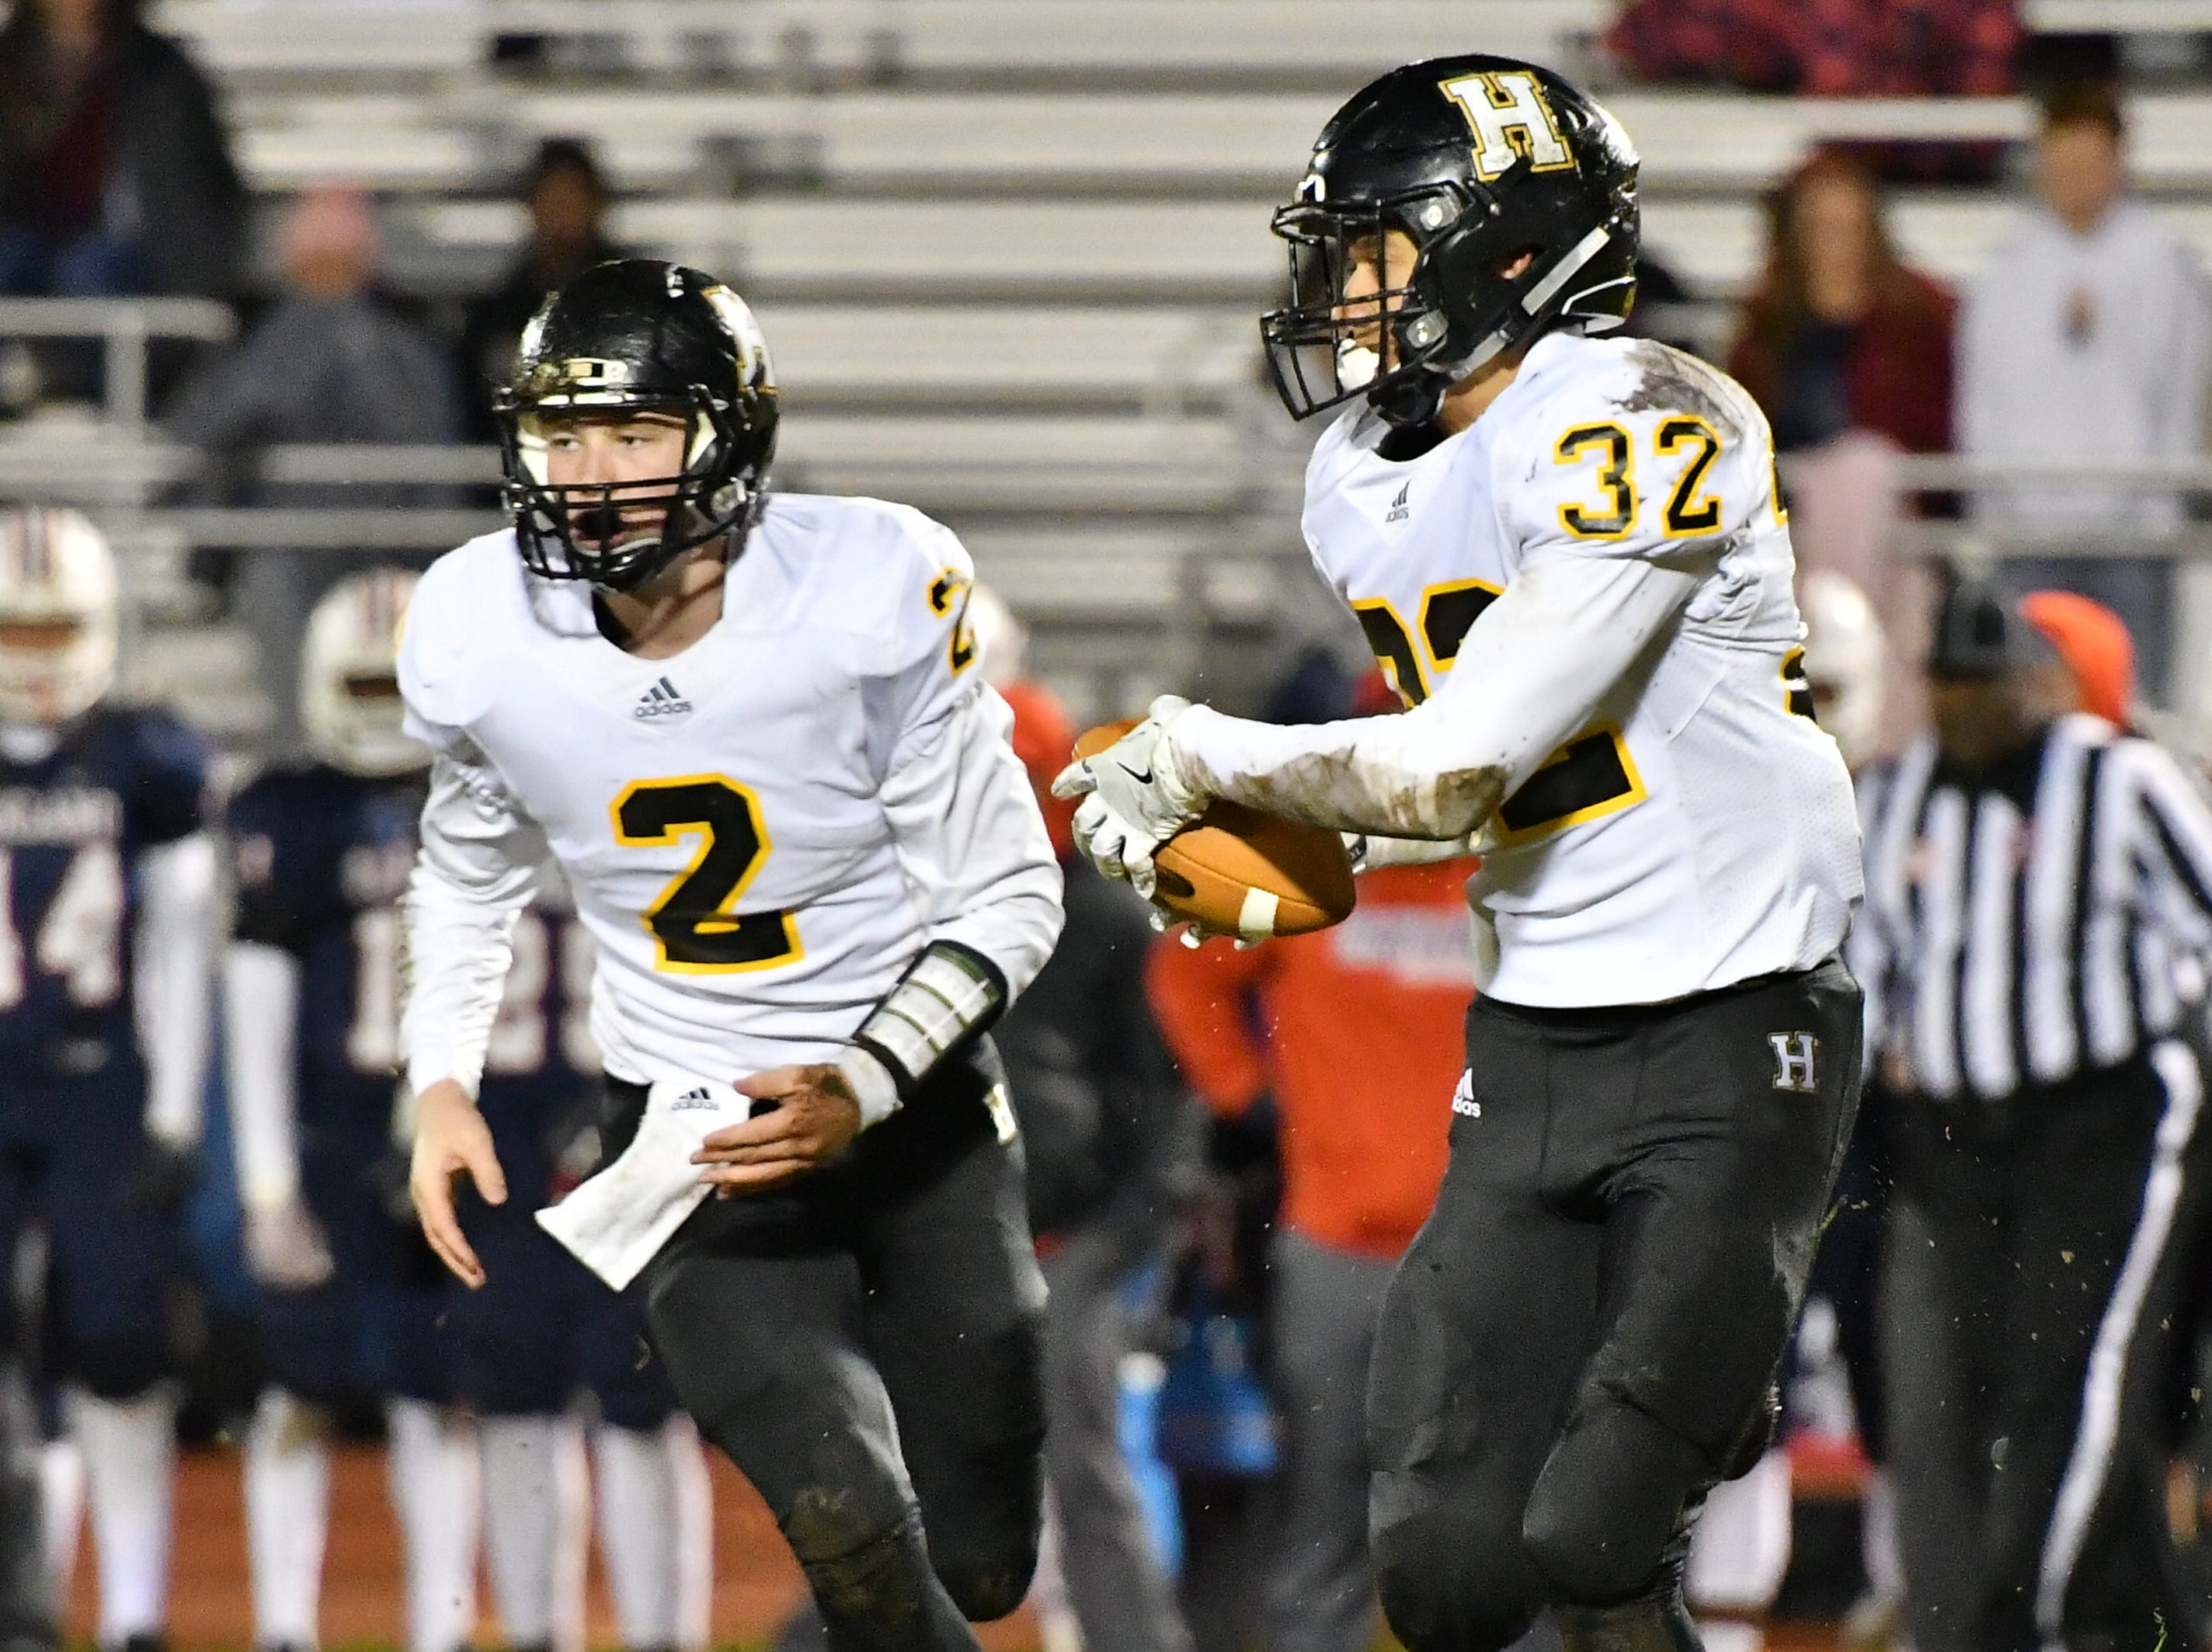 Hendersonville running back Derek Kincaid, 32, takes a toss from quarterback Drew Hohenbrink Friday night against Oakland.